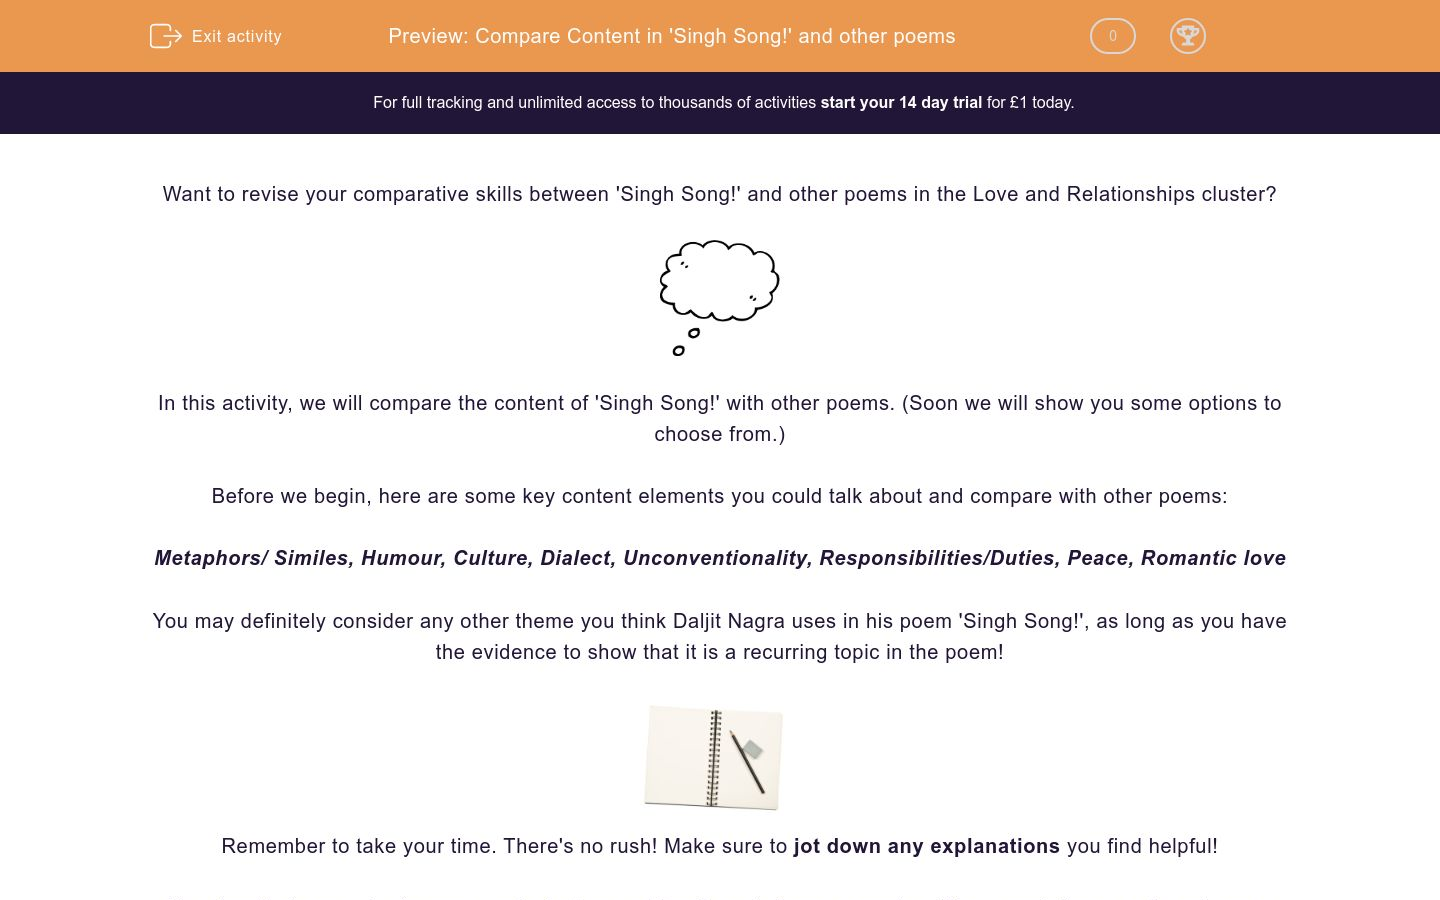 'Compare Content in 'Singh Song!' and other poems' worksheet